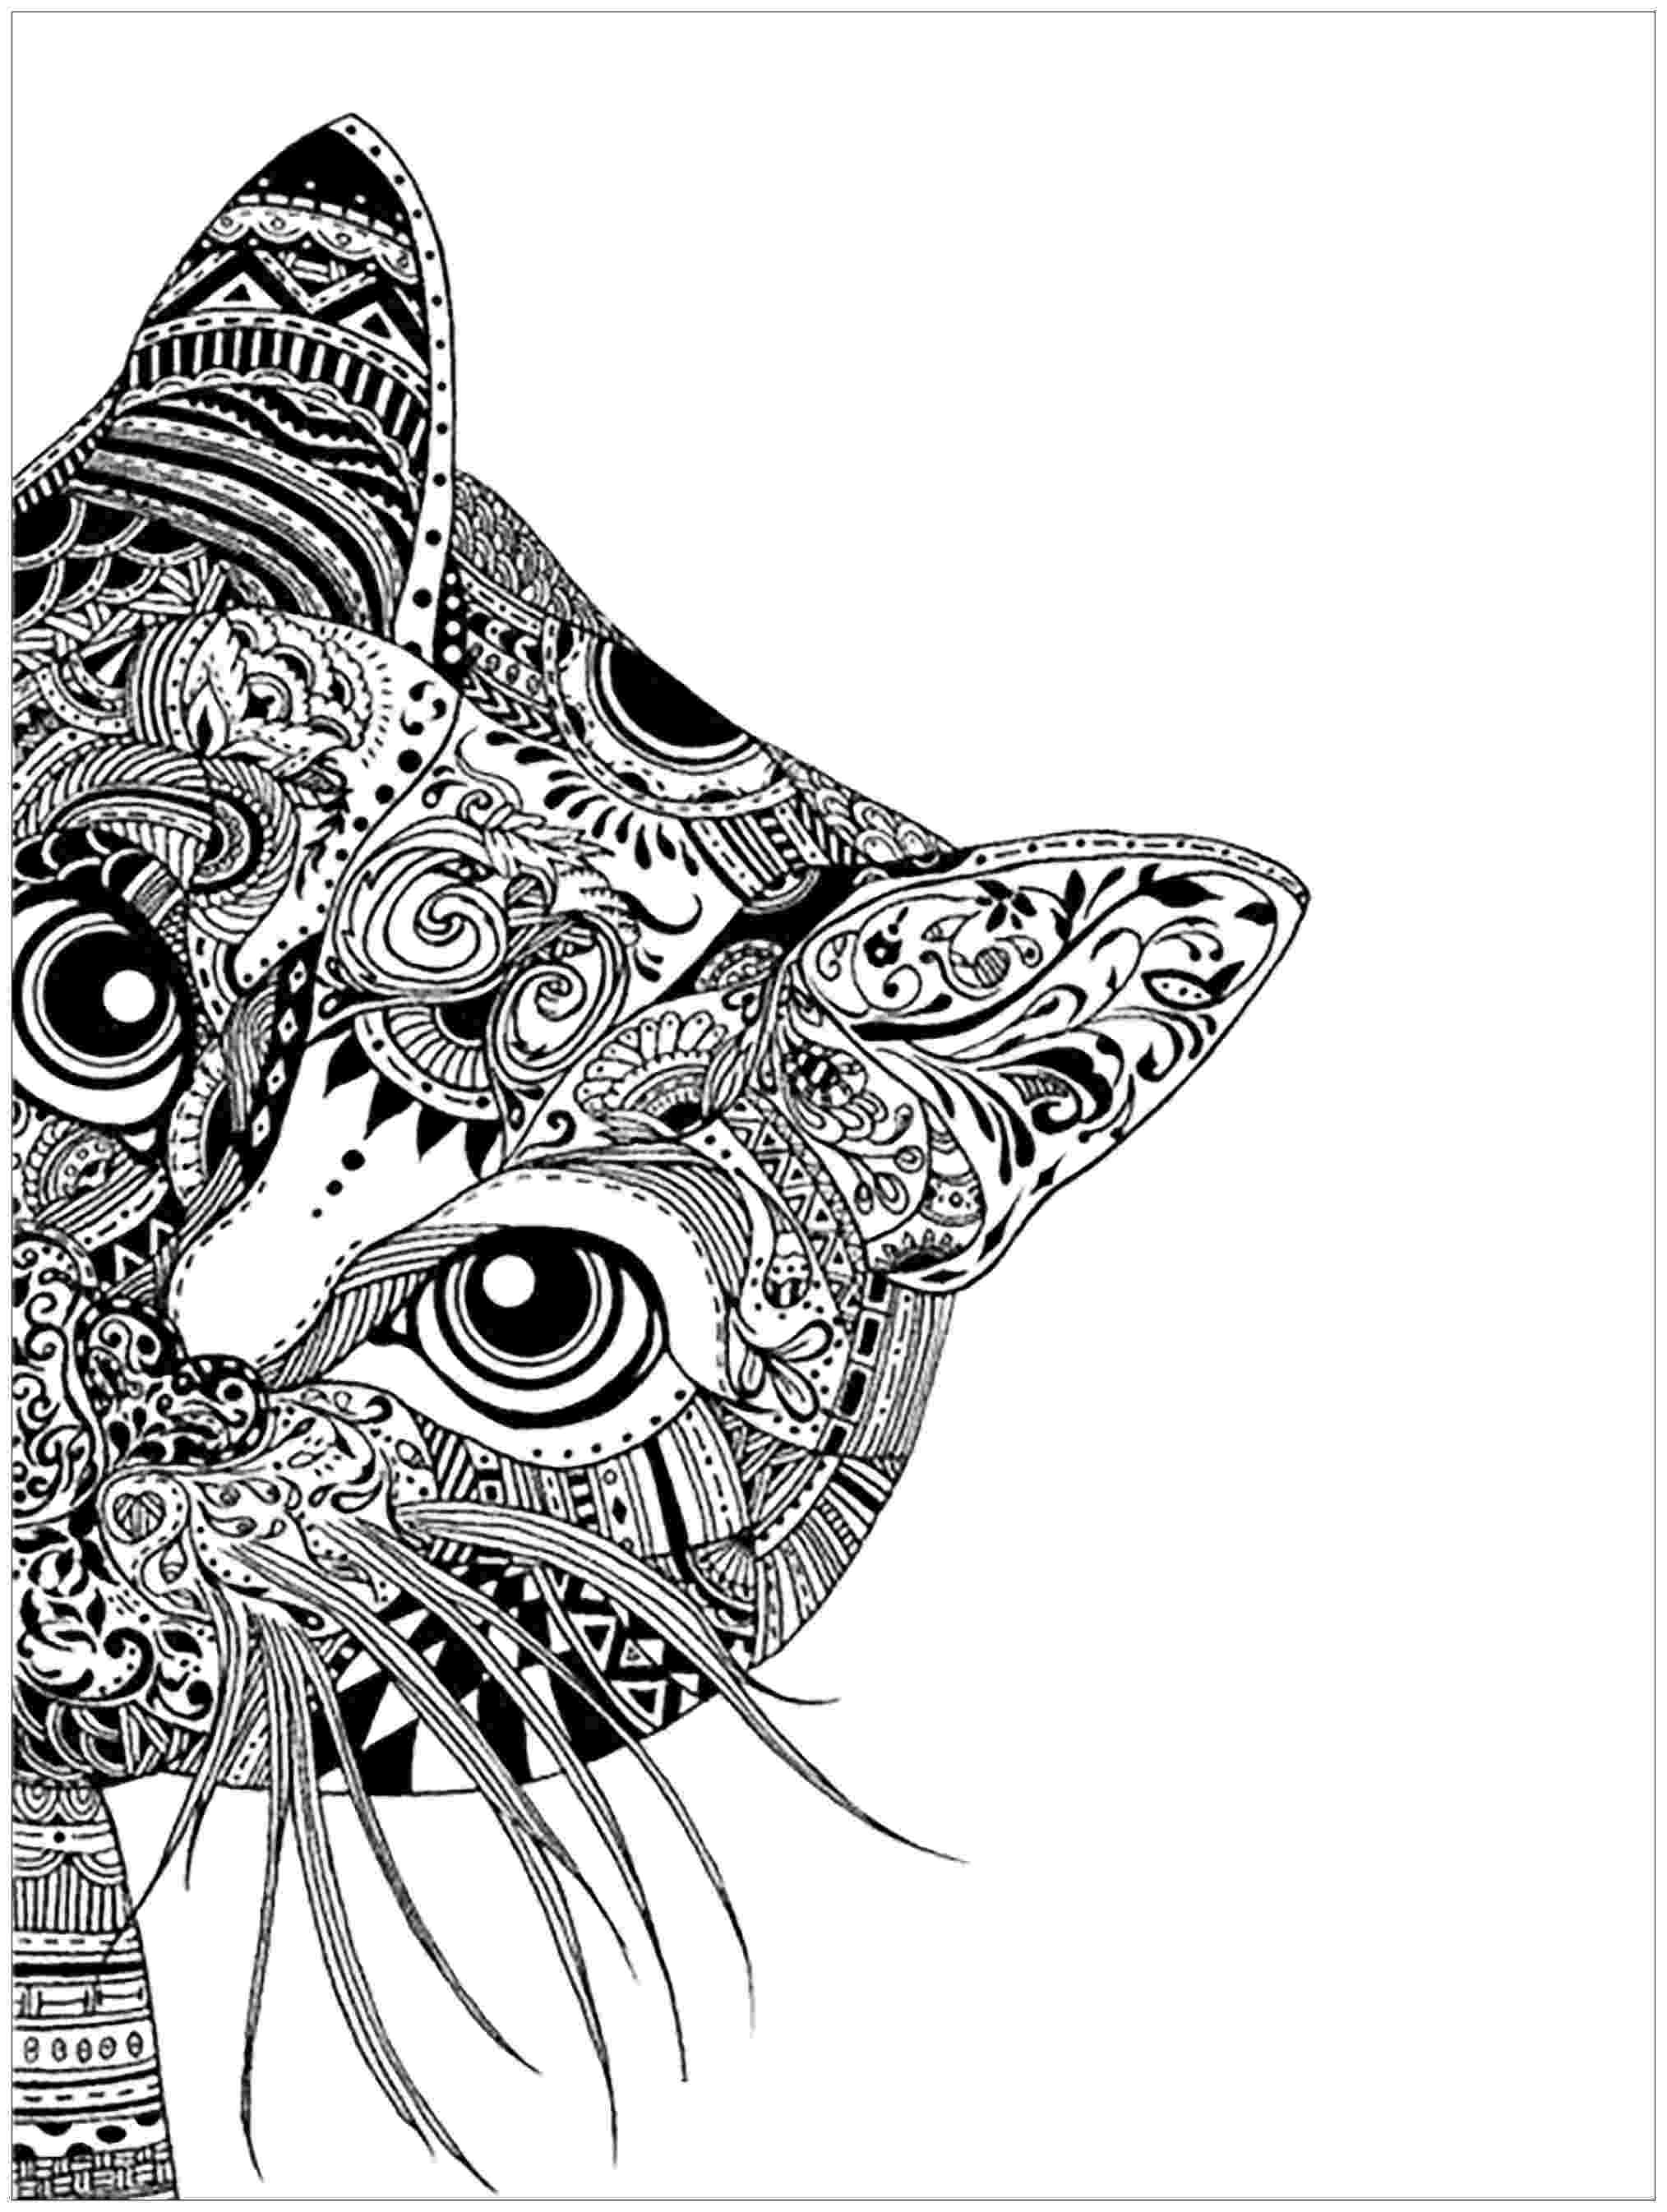 colouring pages for adults animals adult coloring pages animals best coloring pages for kids colouring for pages animals adults